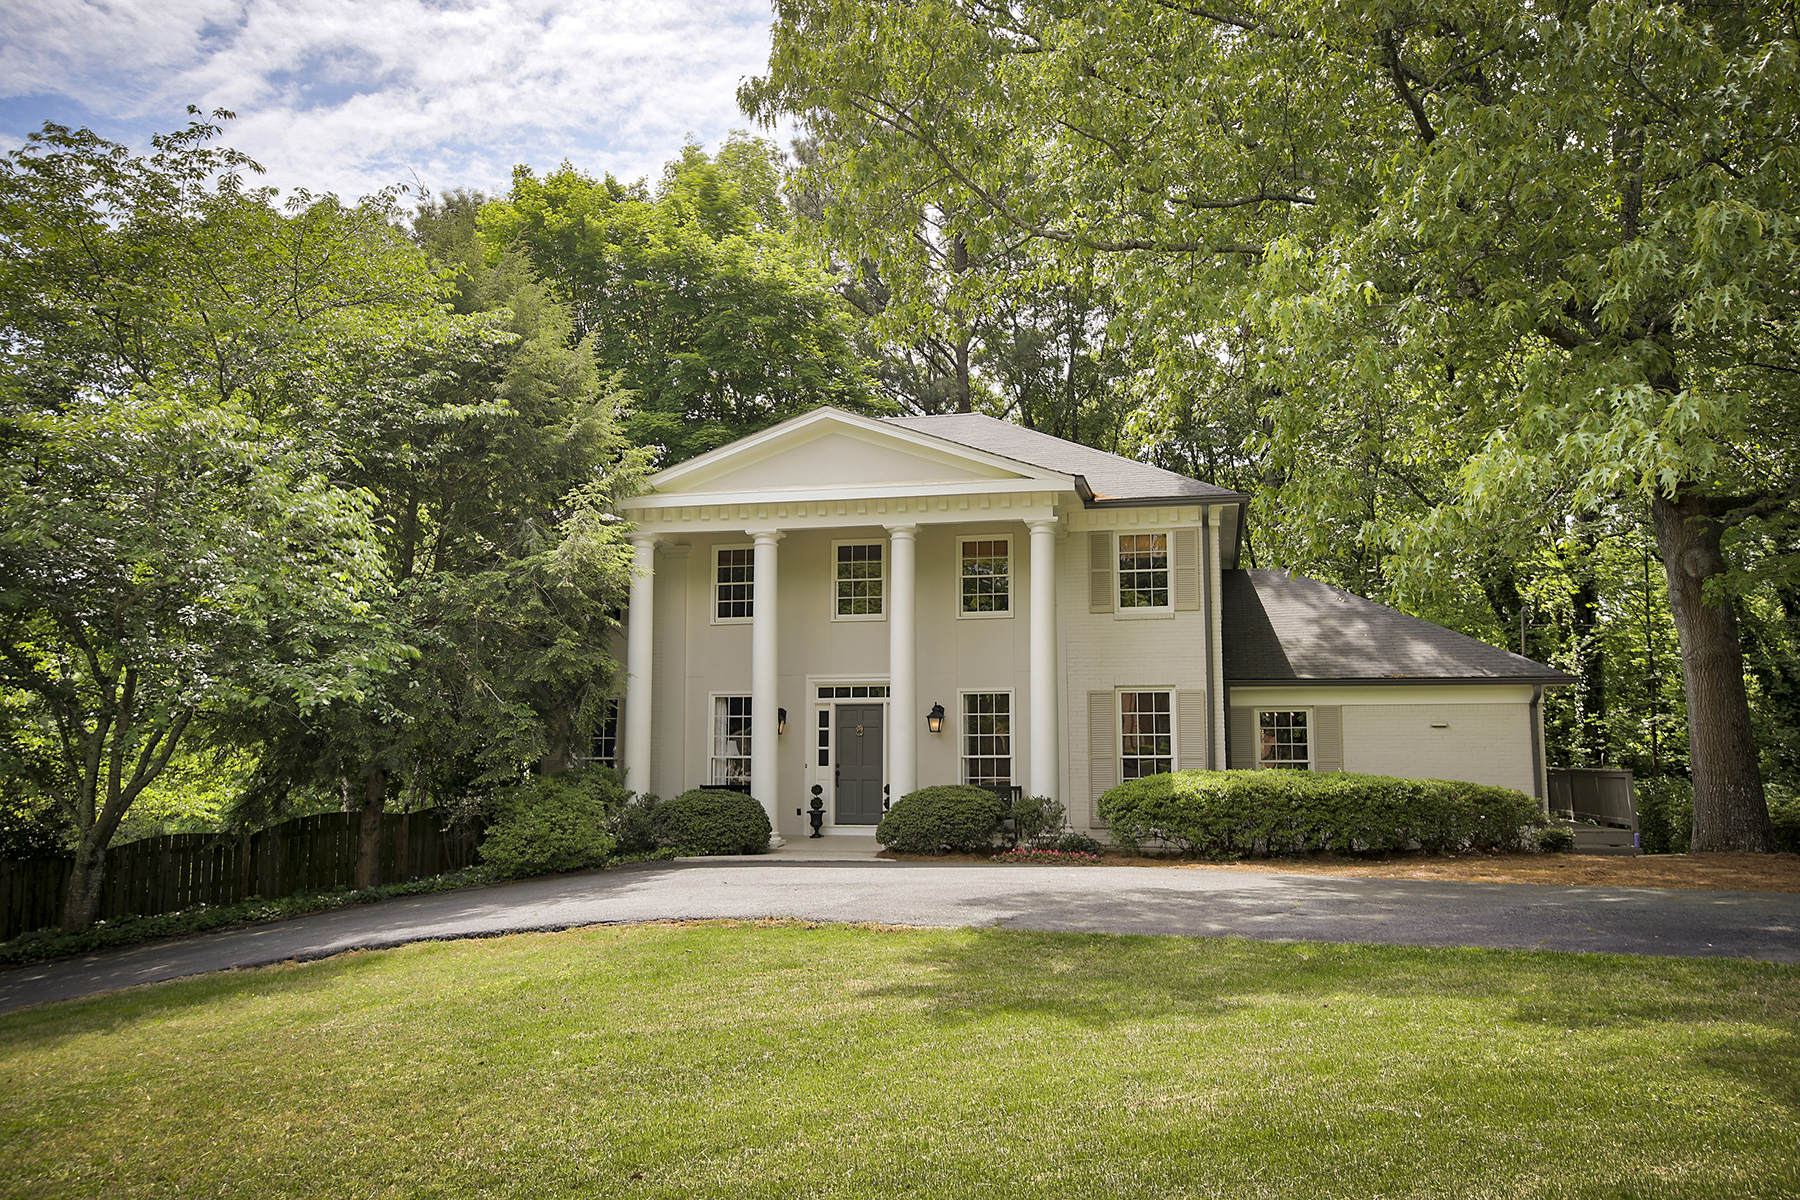 Single Family Home for Sale at Walk To Vinings Villages And The Cochise Club 3356 Cochise Drive SE Atlanta, Georgia 30339 United States